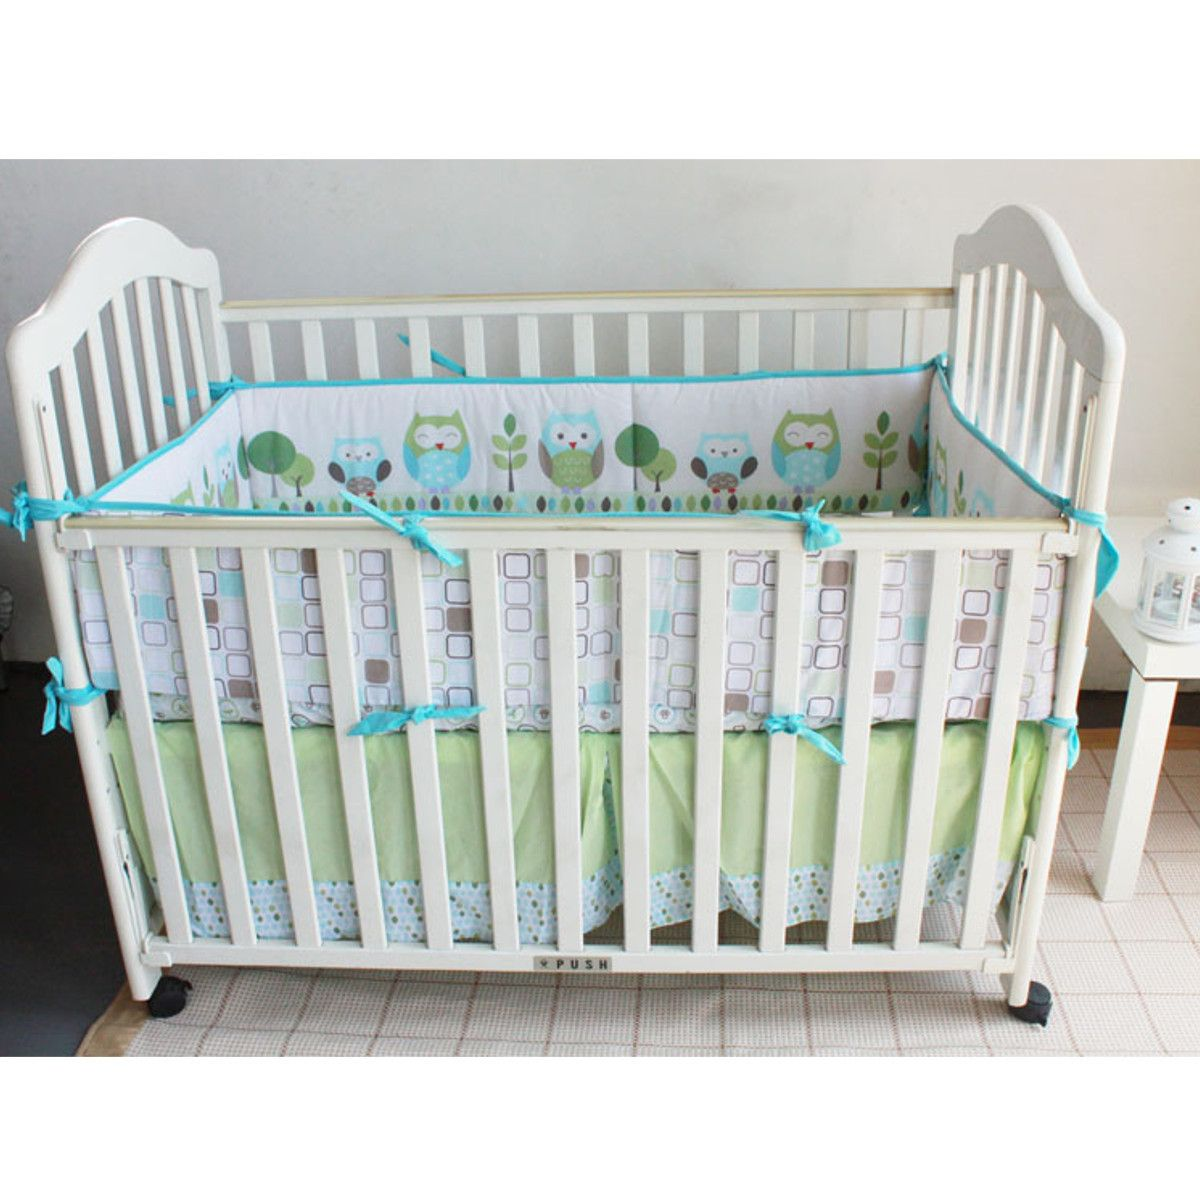 85 Reference Of Baby Bed Bumper In 2020 Baby Crib Mattress Baby Bed Baby Bedding Sets